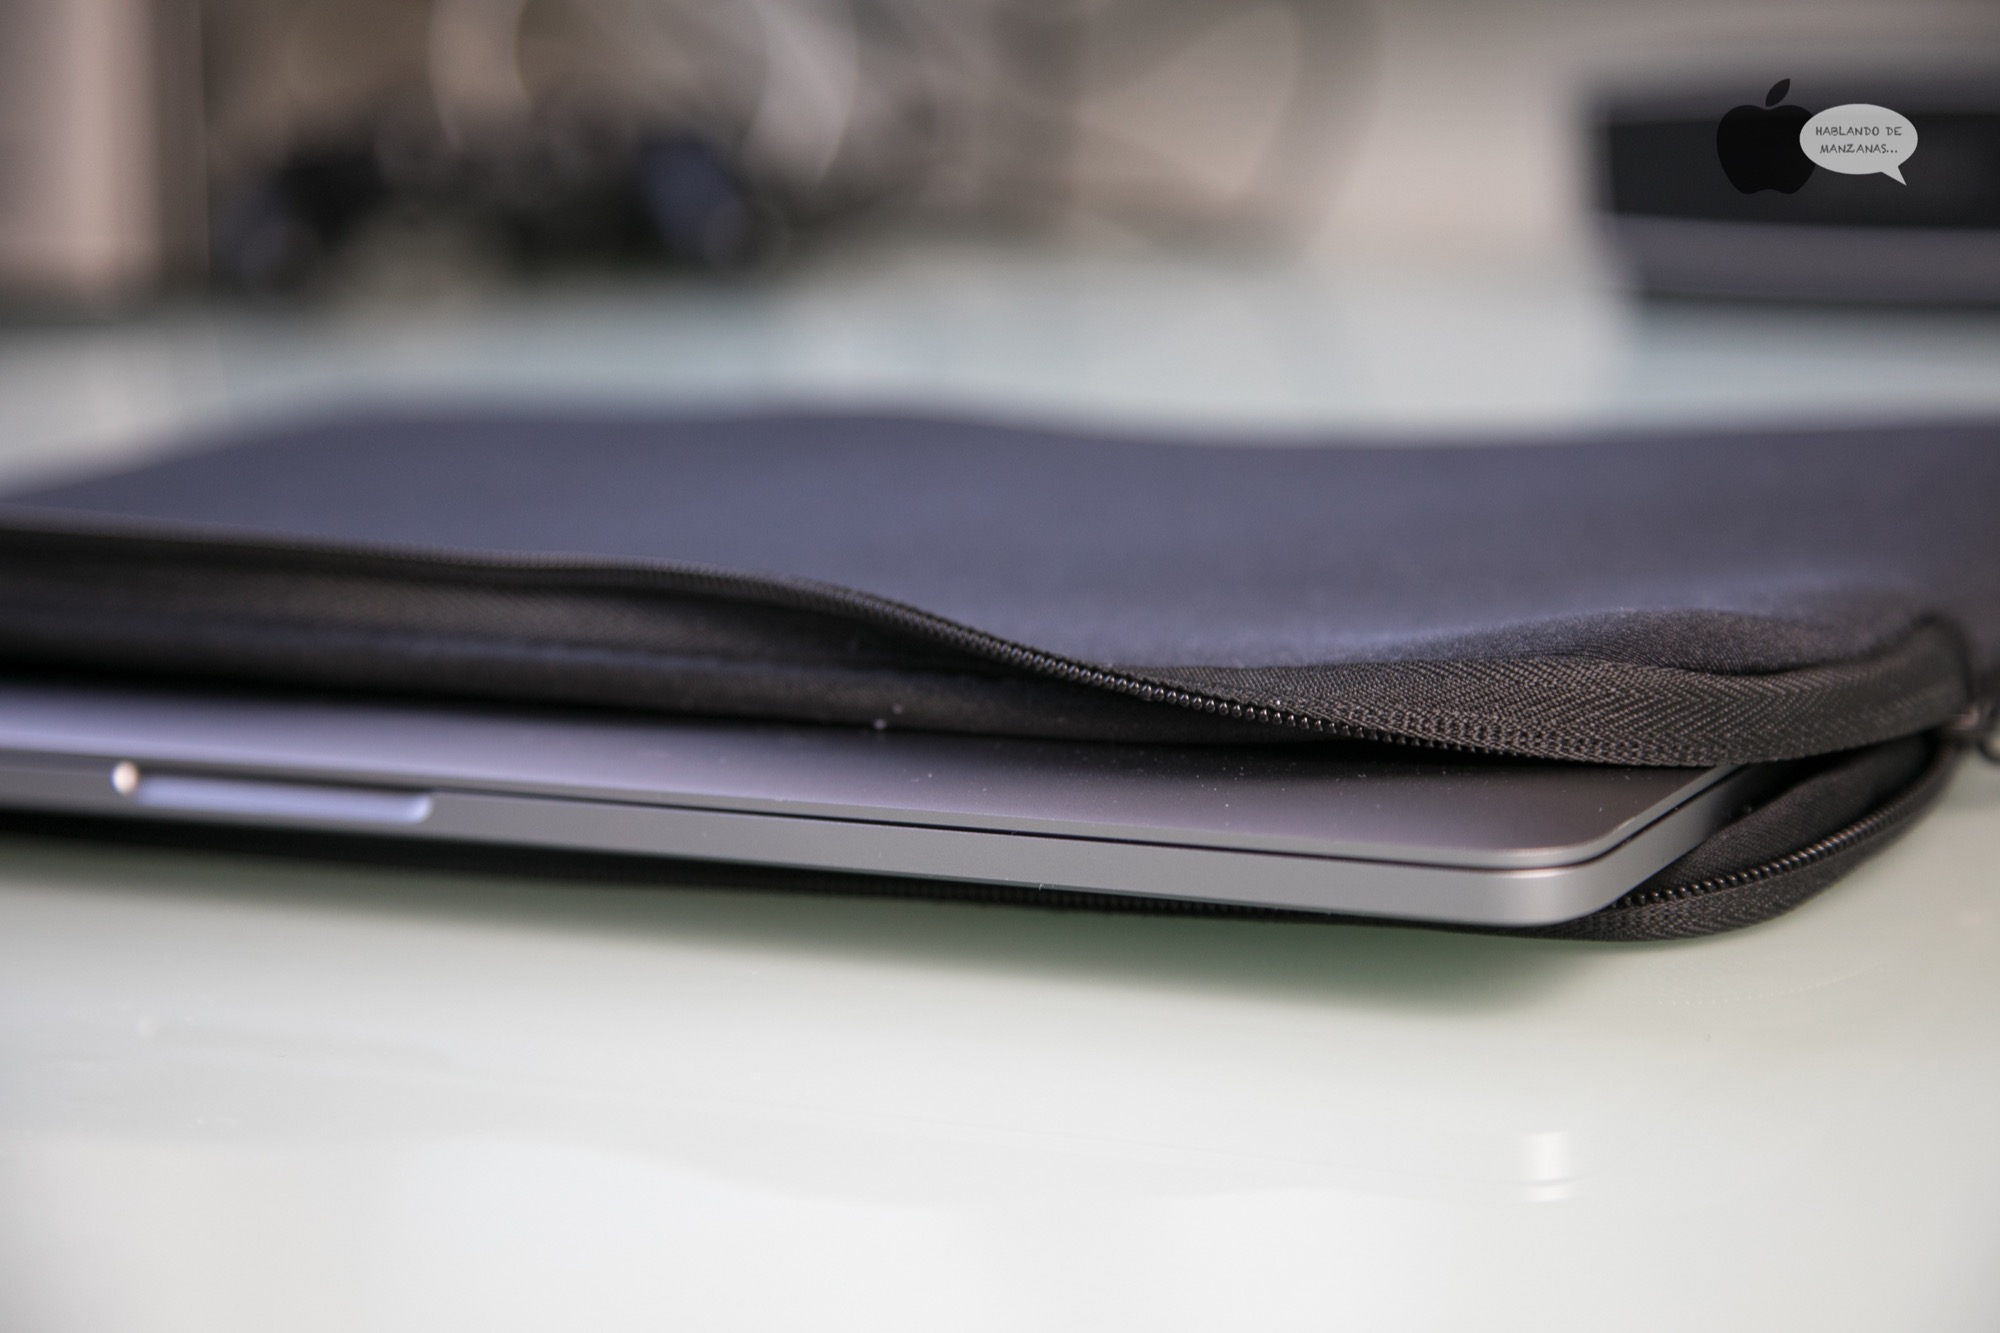 Funda de portátil Tucano Second Skin Elements, compatible con Macbook con Touch Bar